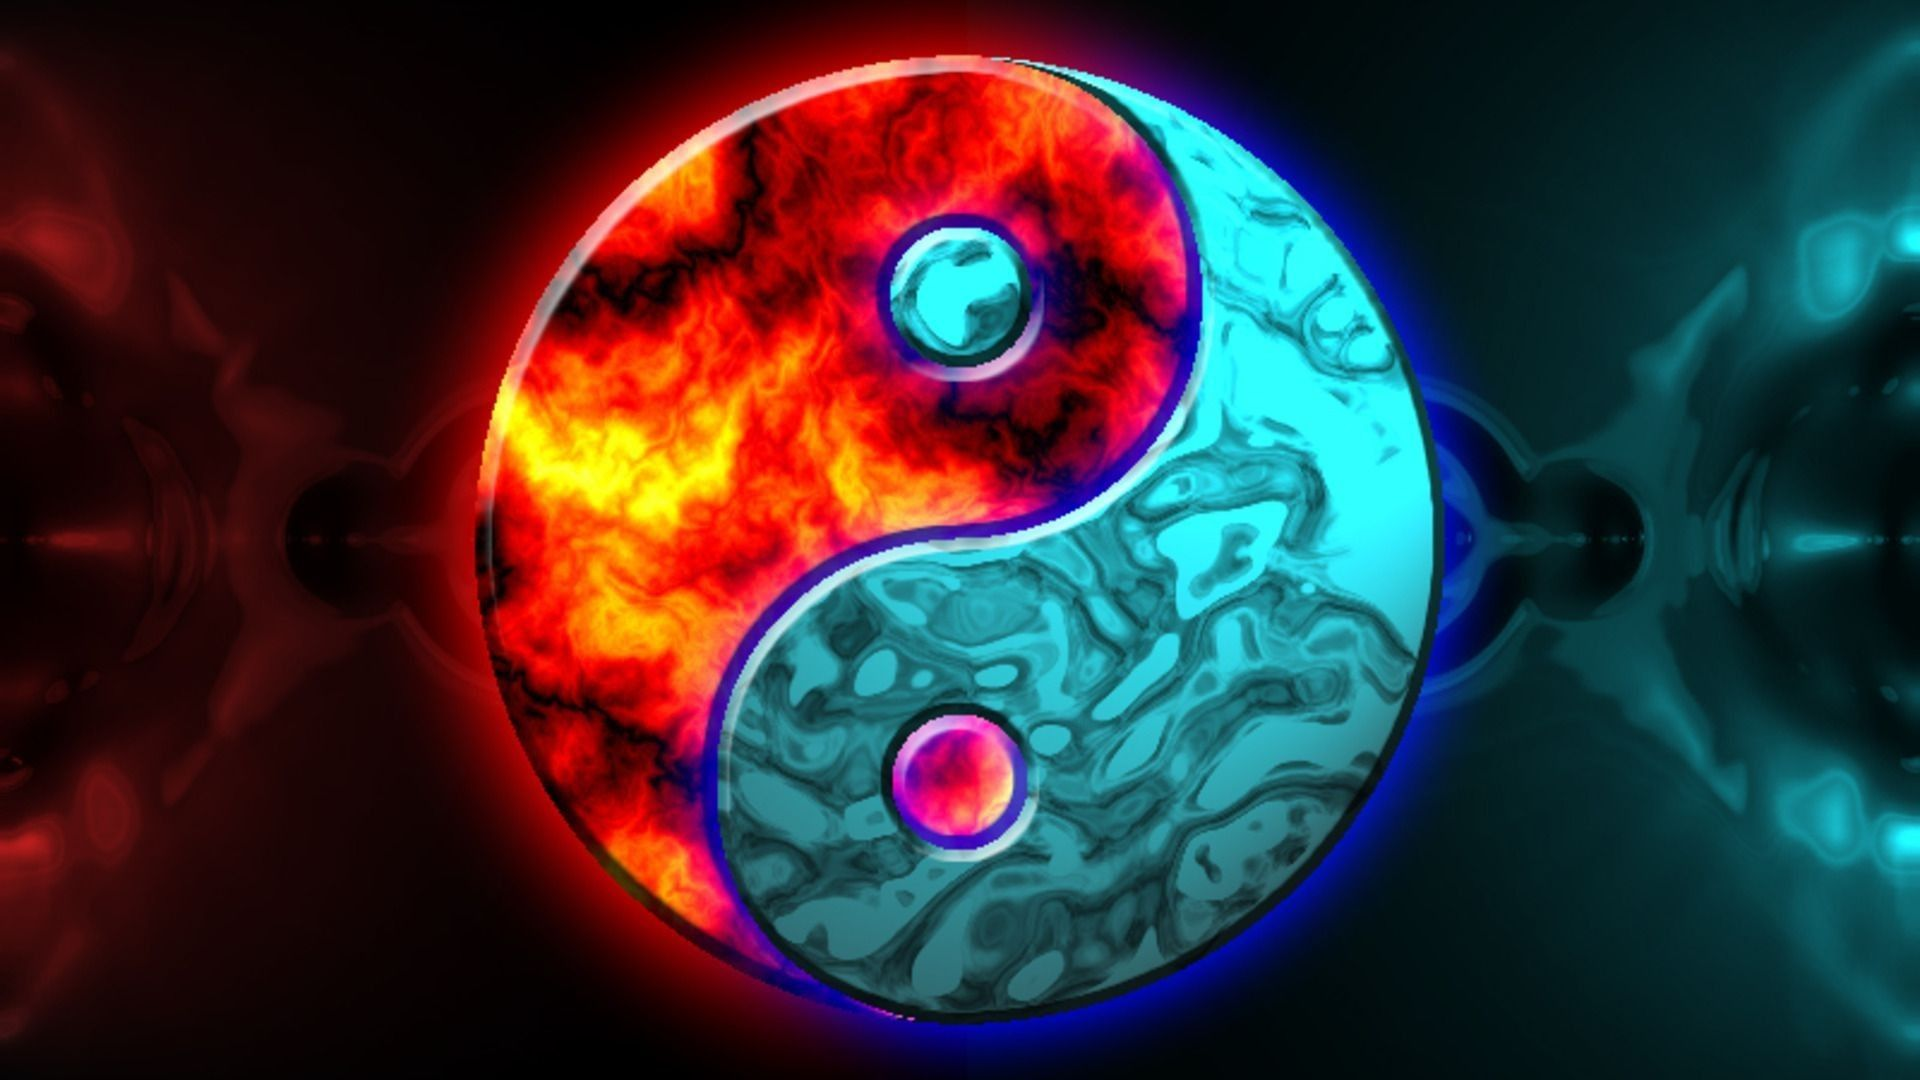 yin yang artwork abstraction new hd wallpaper | bermuda triangle